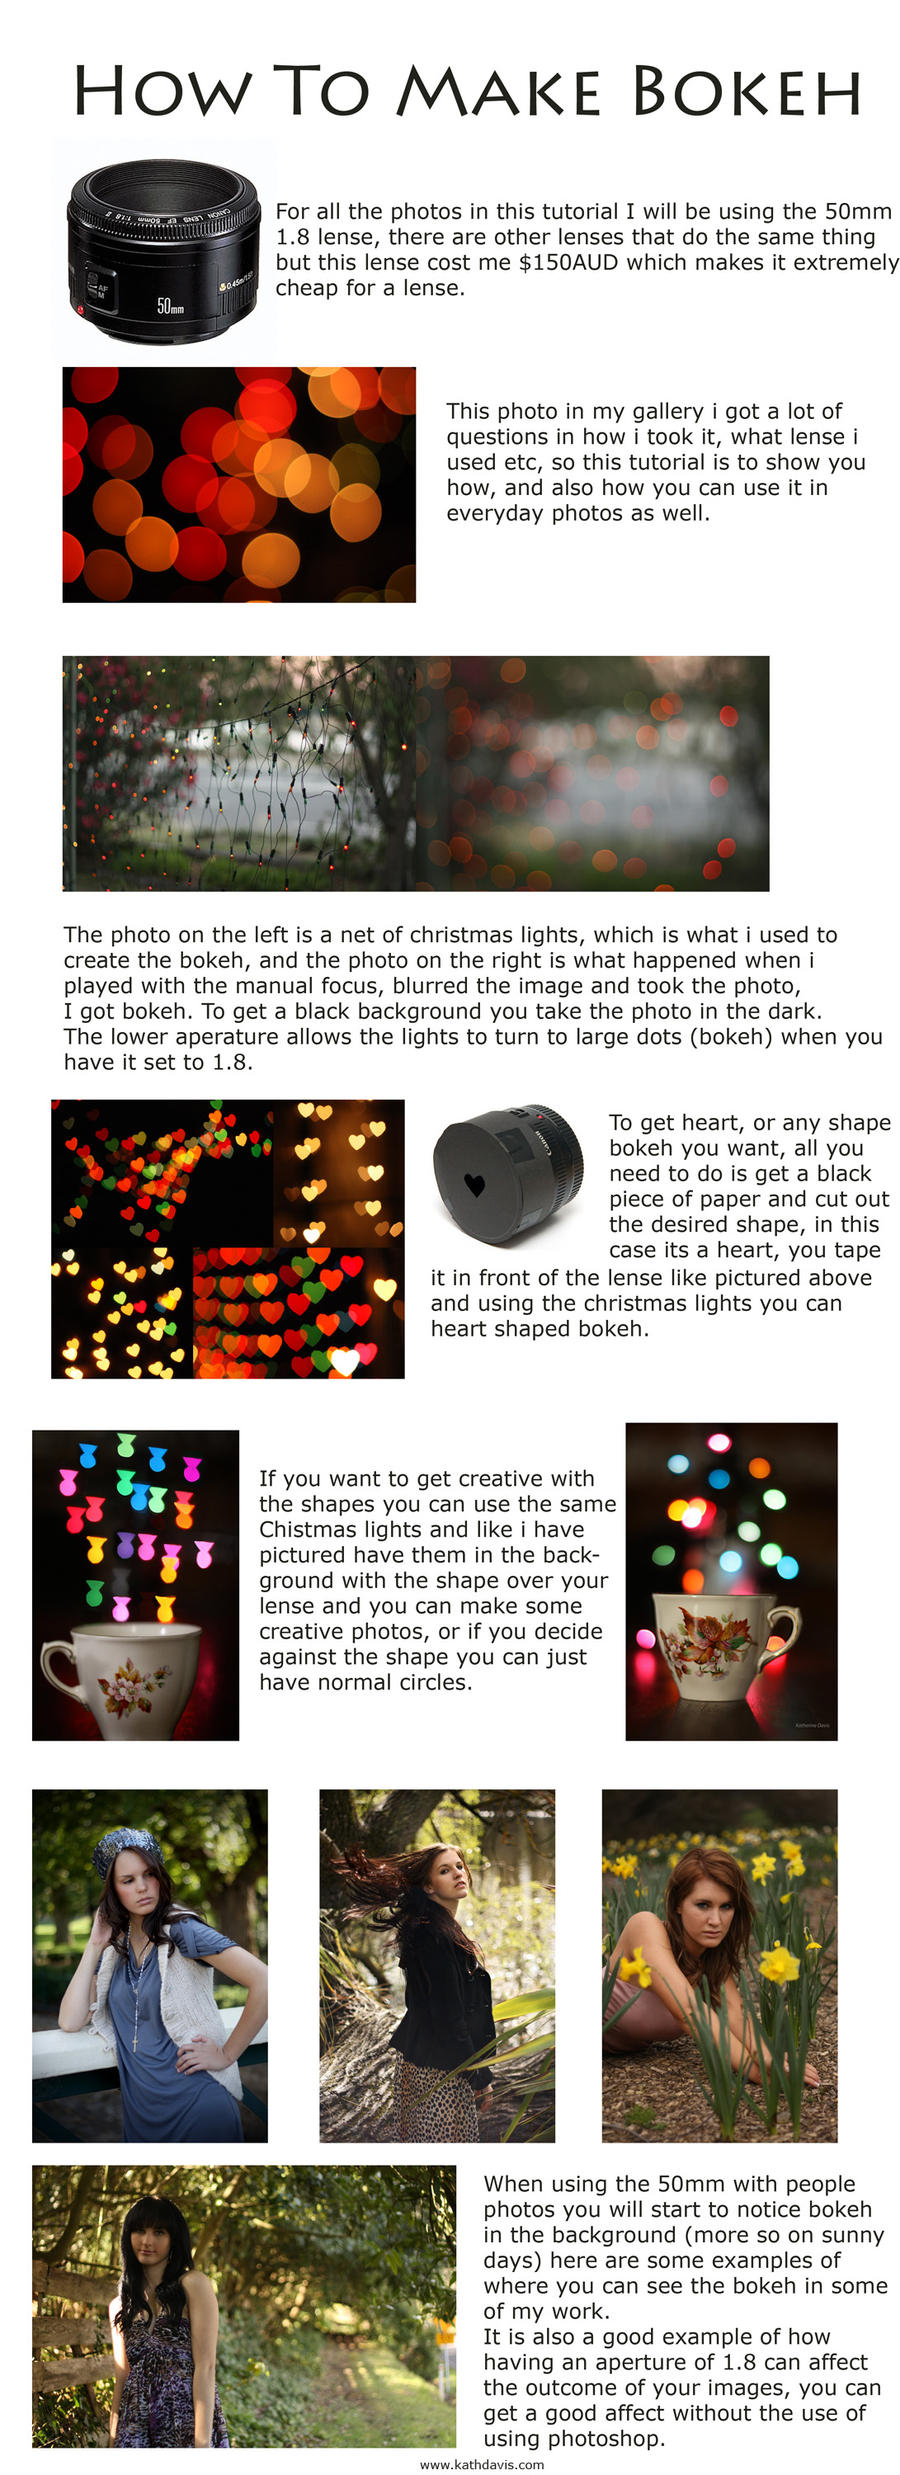 How to make bokeh by KatherineDavis